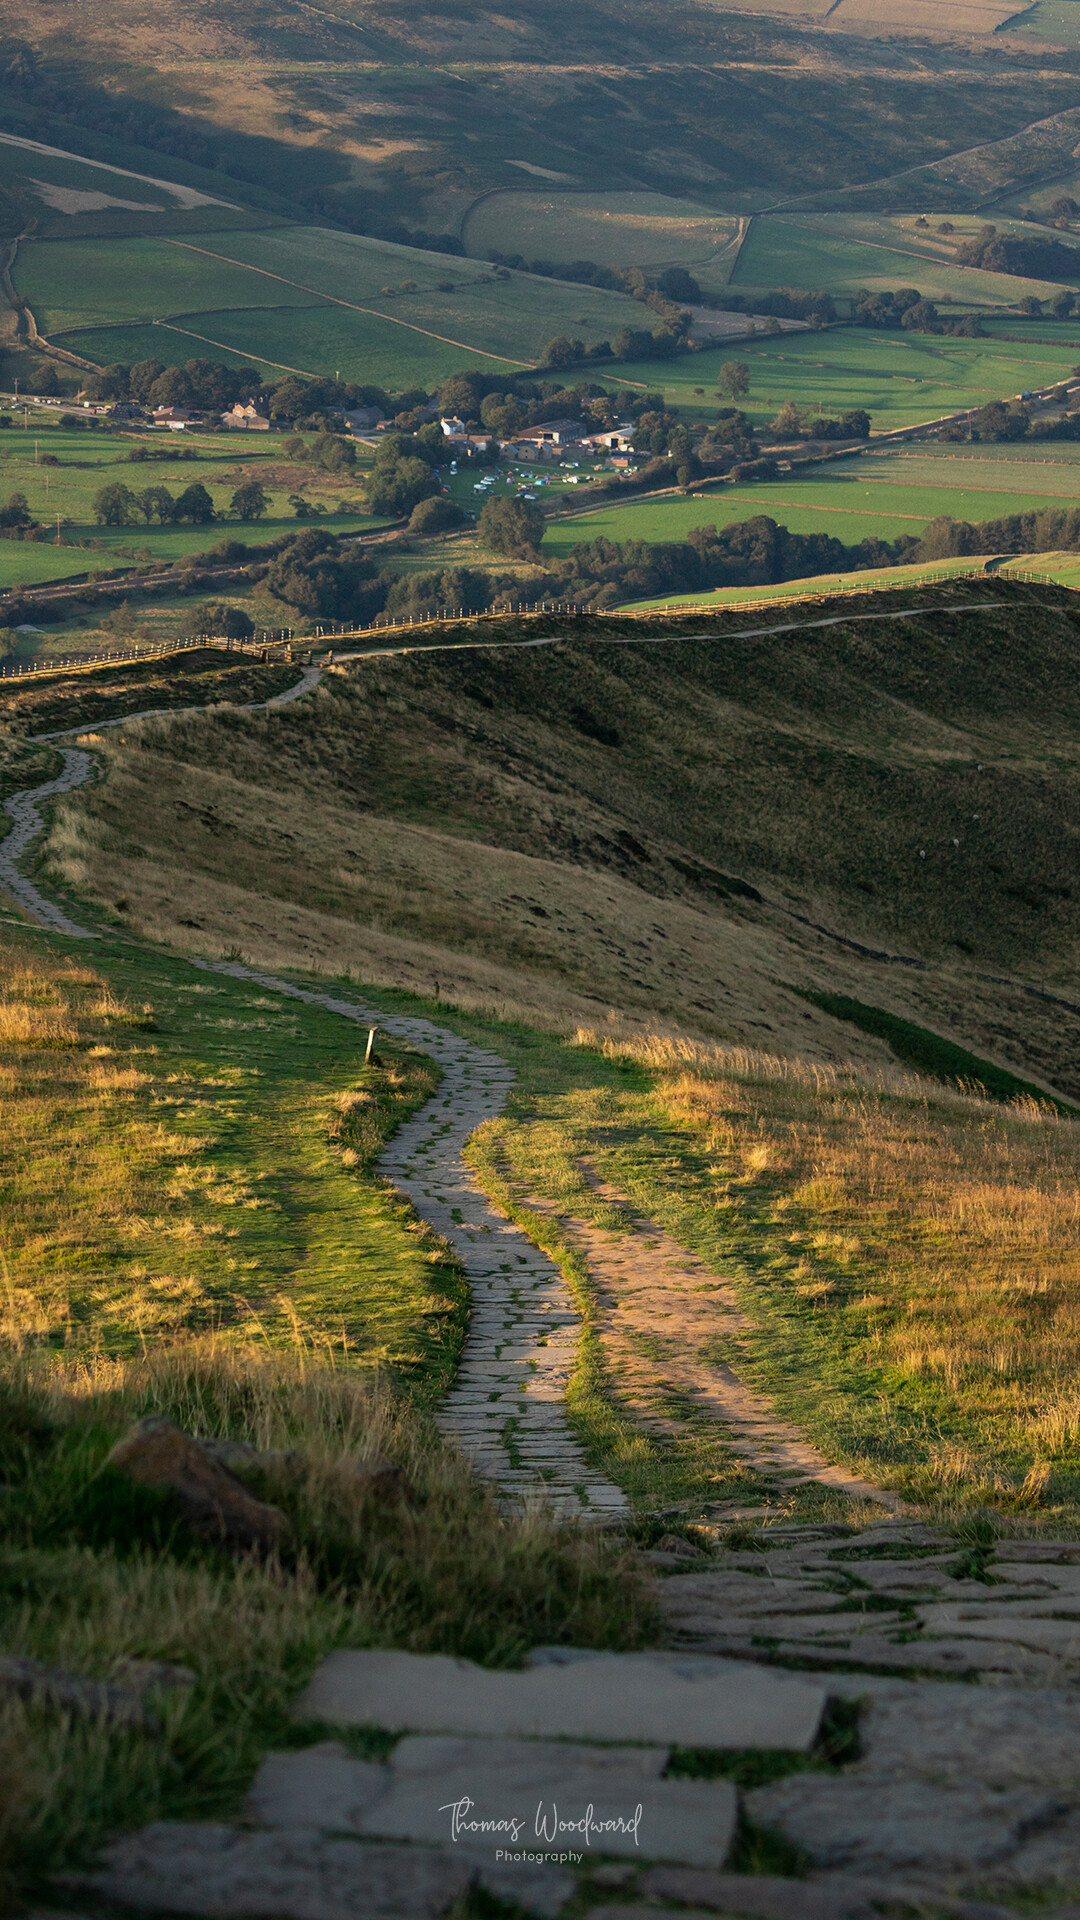 Thomas woodward mam tor evening 5